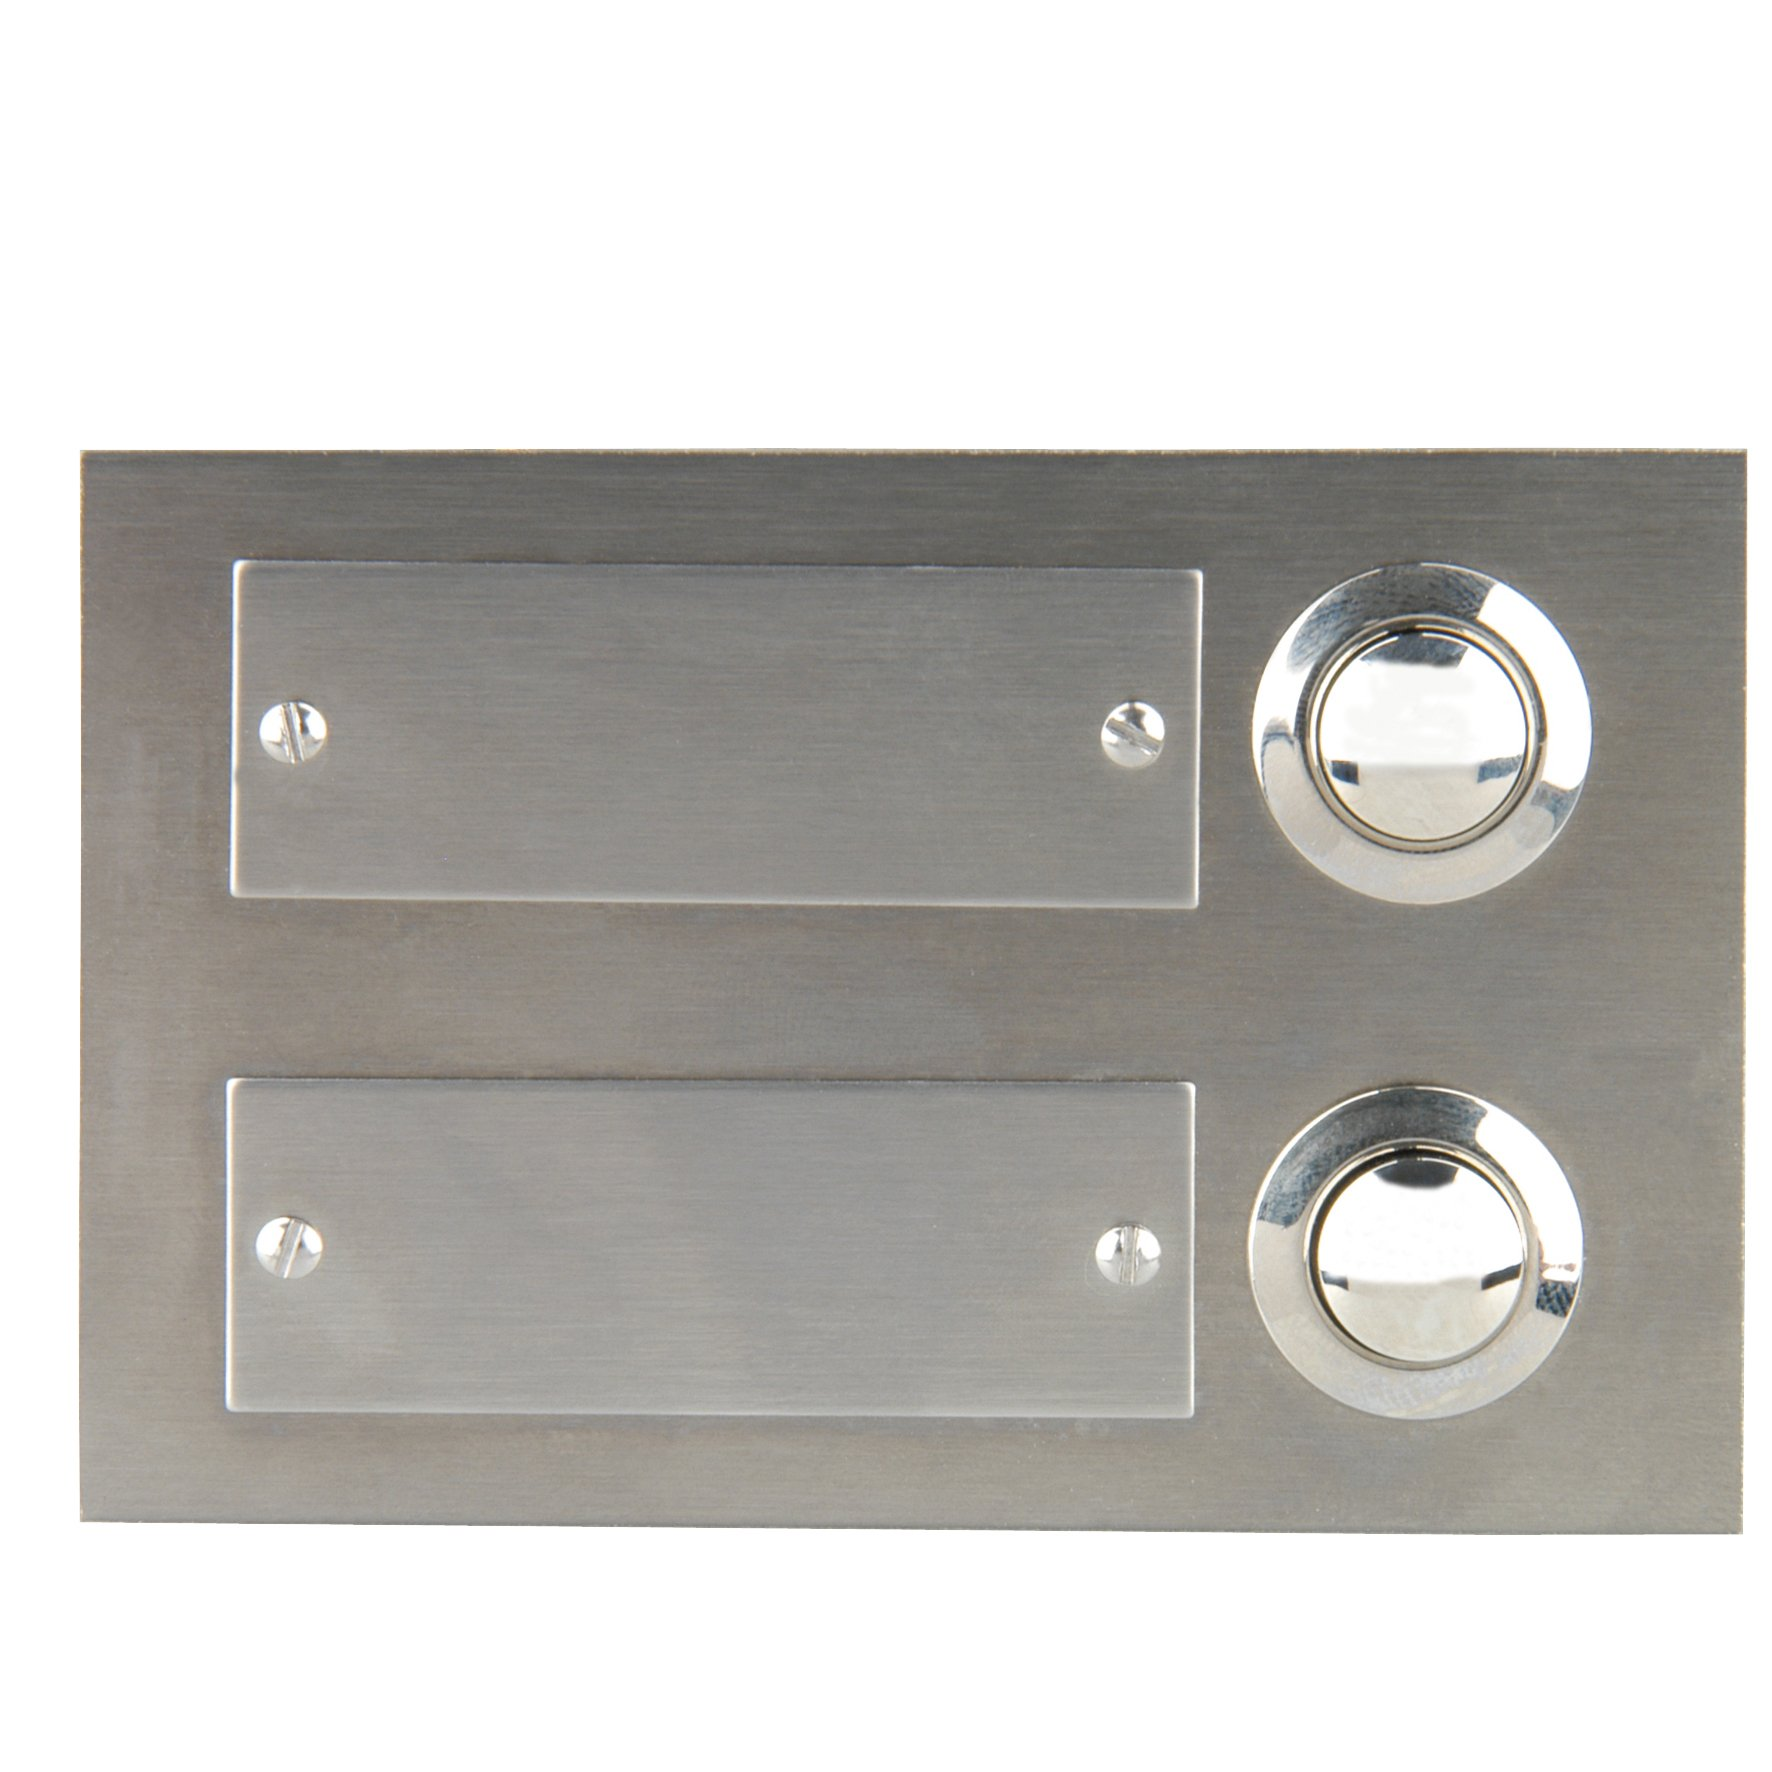 Unitec 47198 Flush-Mounted Door Bell Push Button 2-Channel Stainless Steel